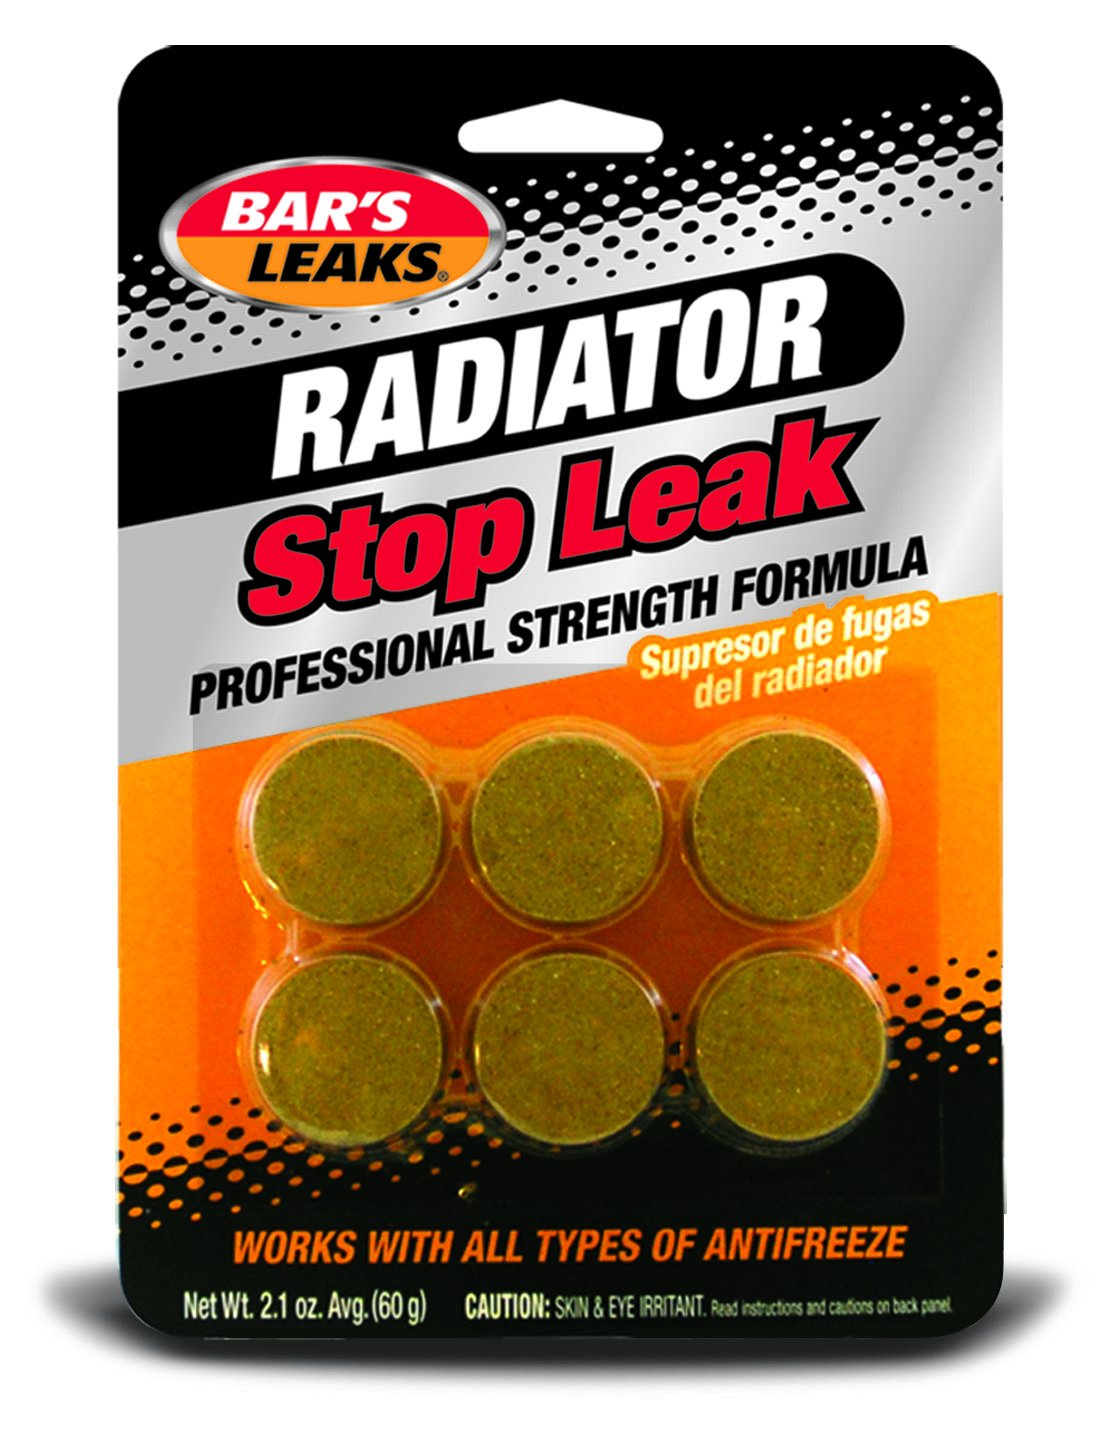 Bar's Leaks HDC Radiator Stop Leak Tablet - 60 grams Bar' s Leaks